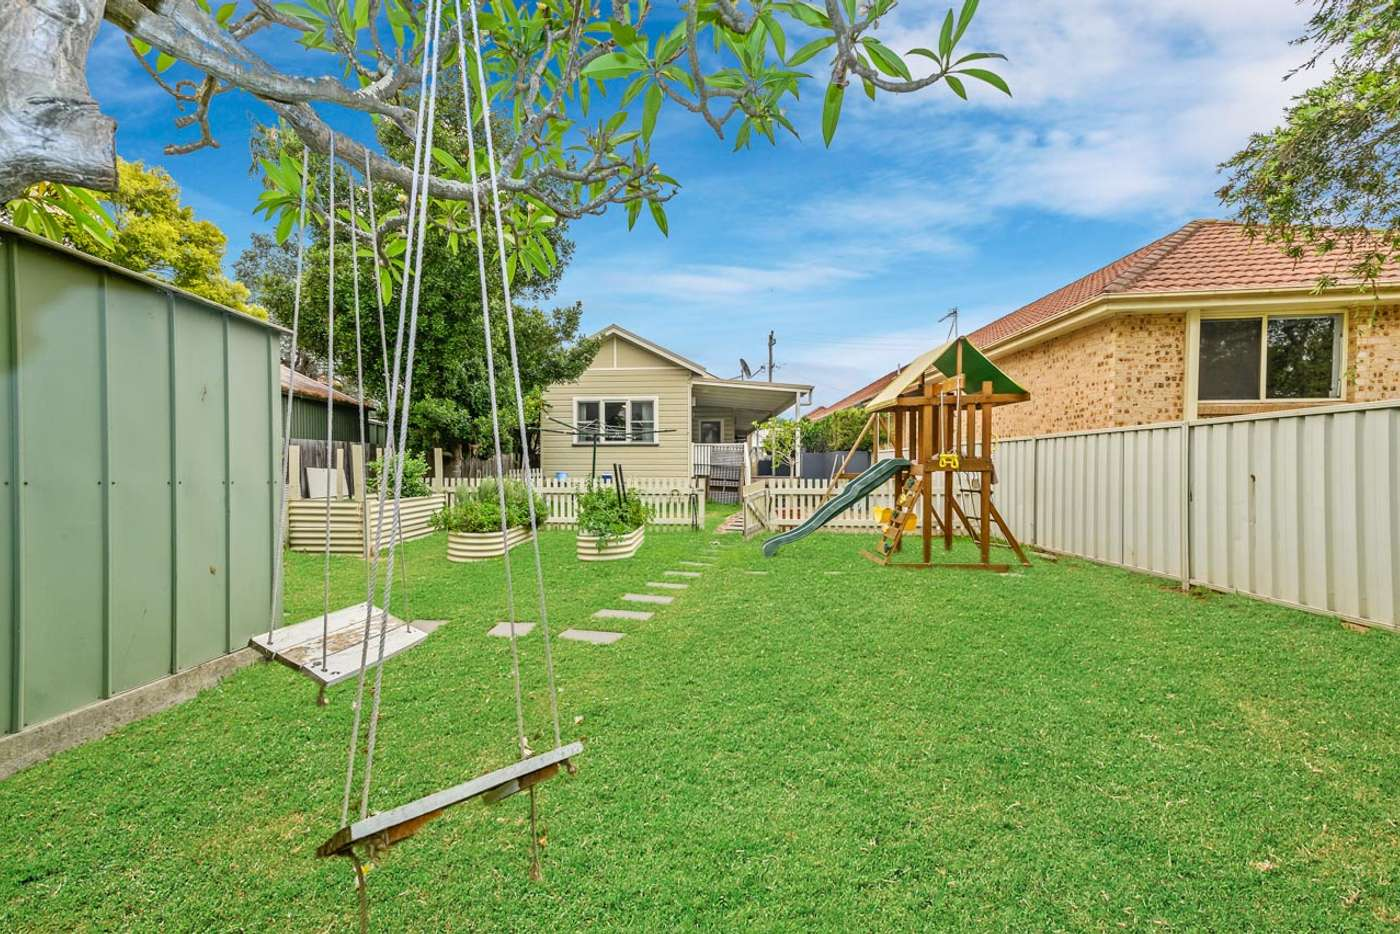 Main view of Homely house listing, 35 Tighe Street, Waratah NSW 2298